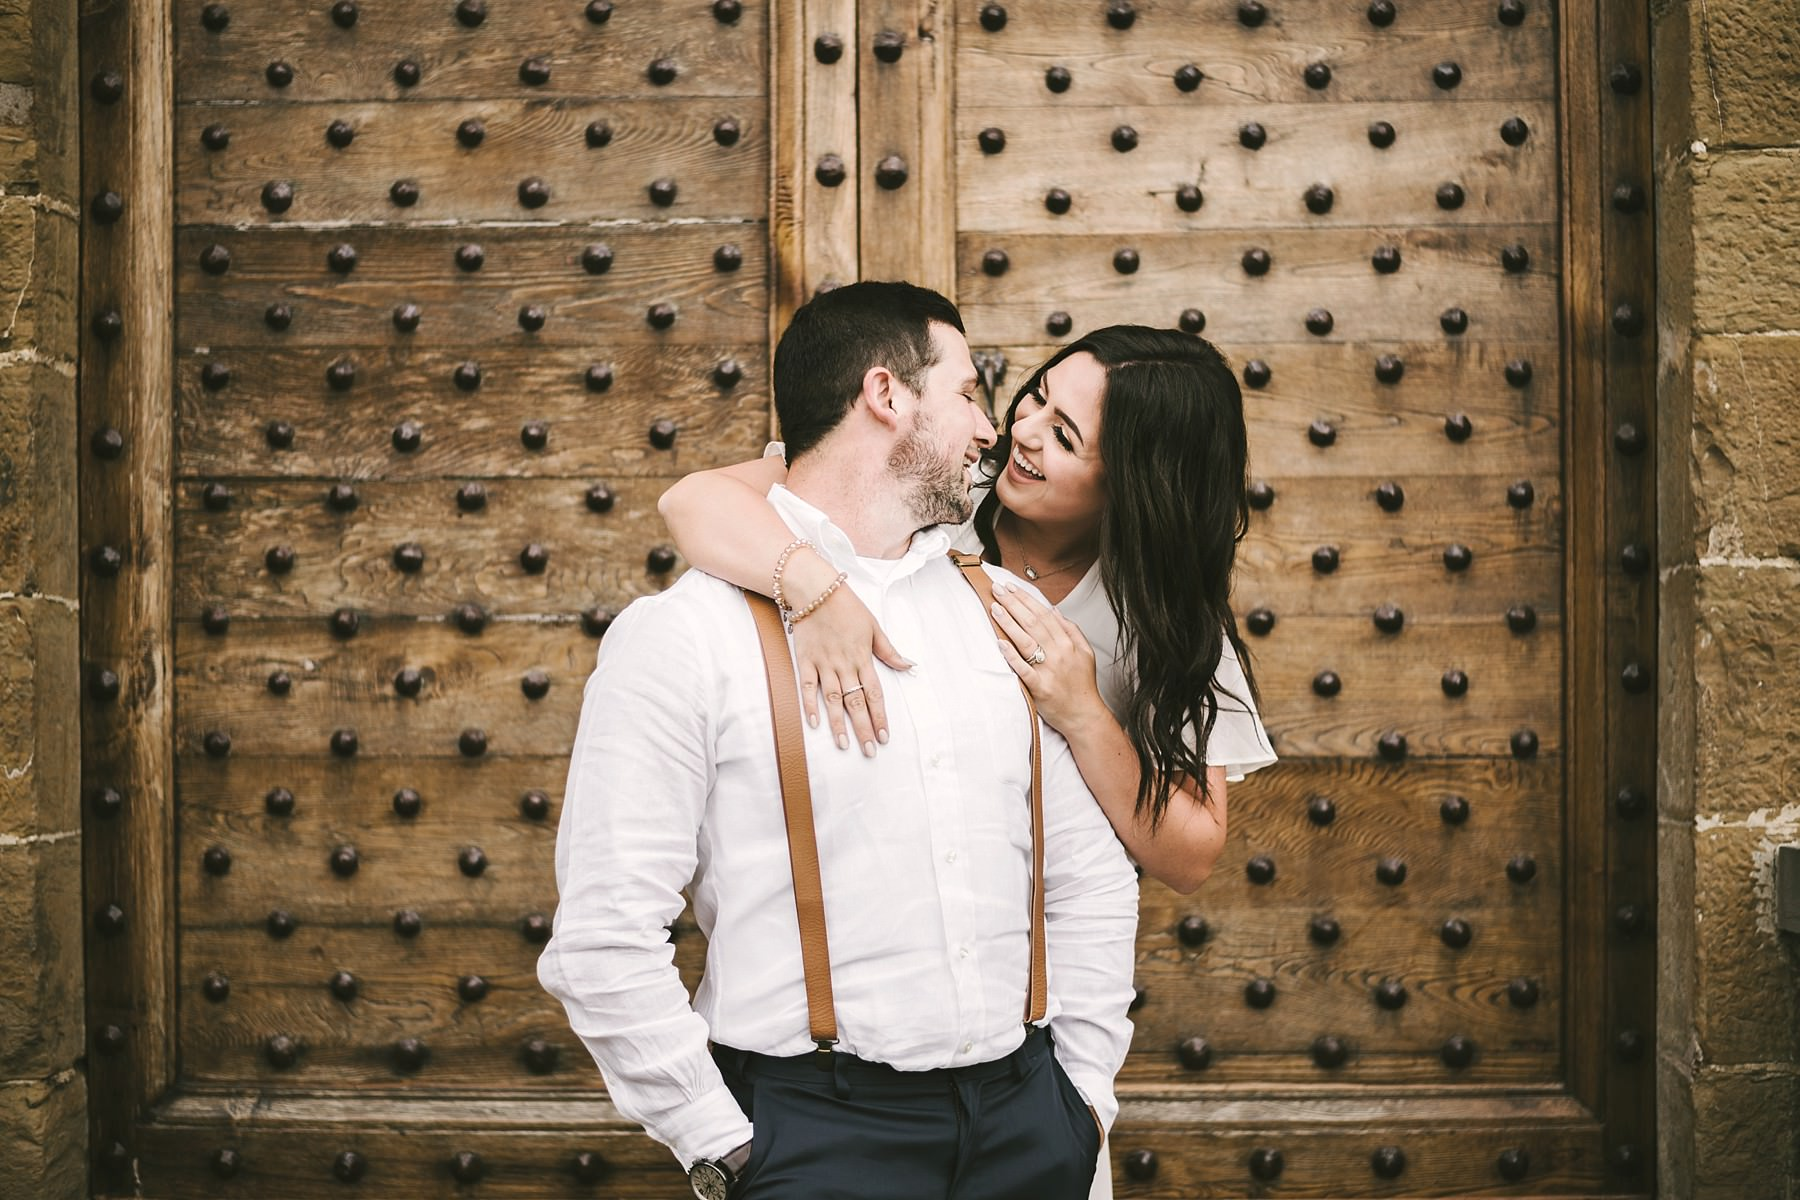 Exciting couple portrait elopement wedding photo session in Florence